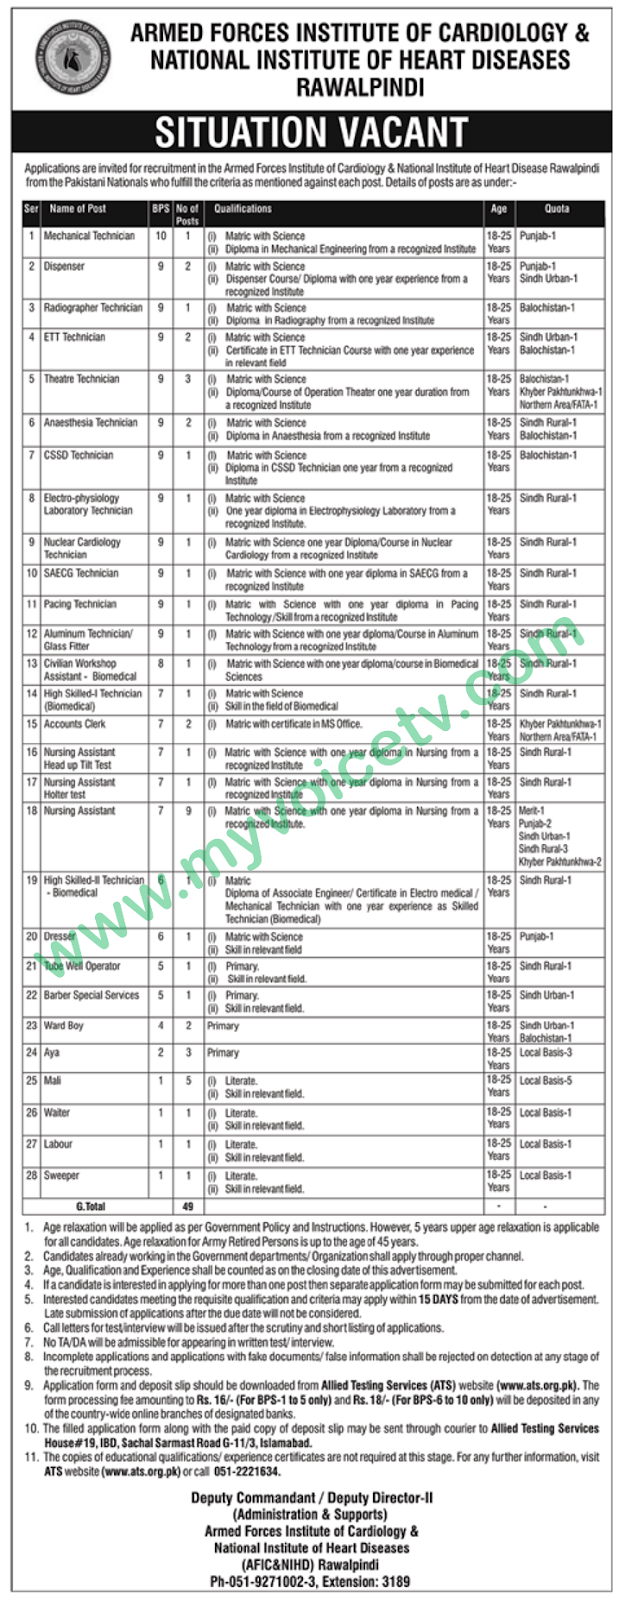 ➨ #Jobs - #Career_Opportunities - #Jobs at Armed Forces Institute of Cardiology & National Institute of Heart Diseases Rawalpindi –for application visit the link